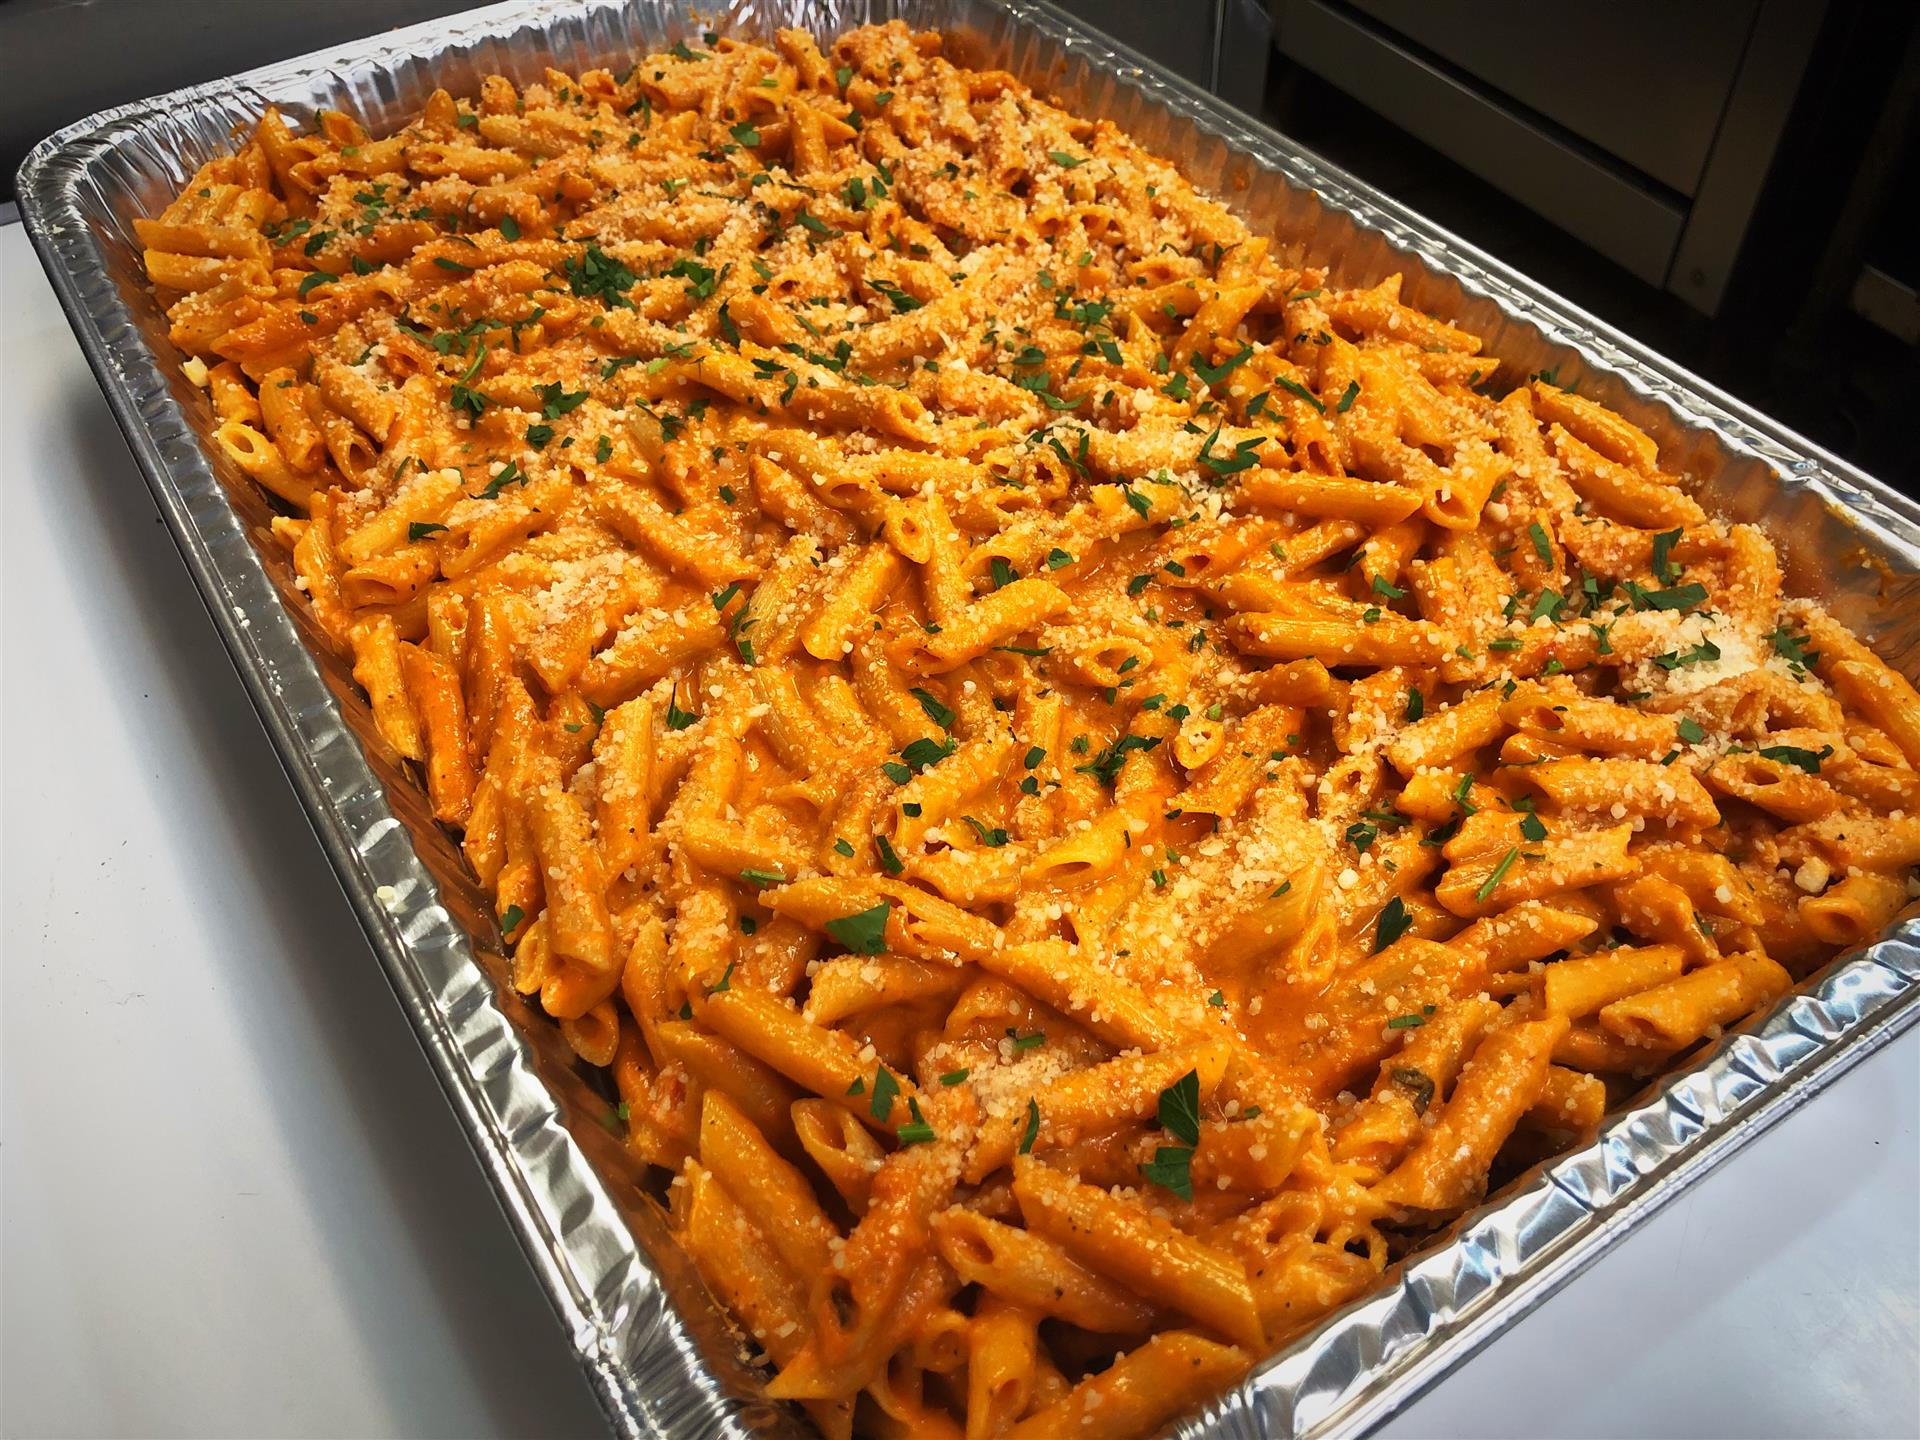 Penne vodka tray